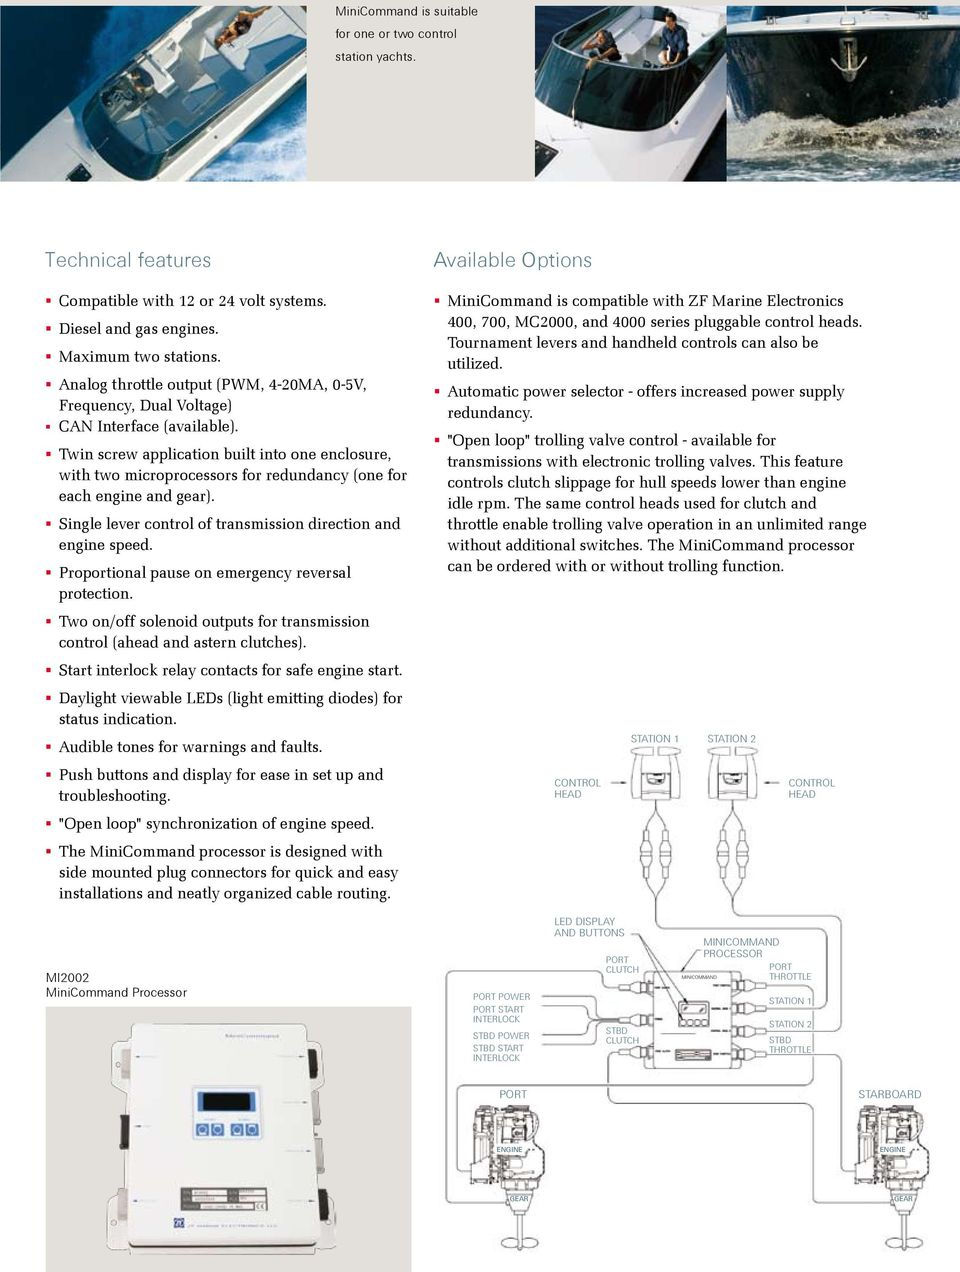 Marine Propulsion Systems Pdf Control Panel Safe Start Interlock Twin Screw Application Built Into One Enclosure With Two Microprocessors For Redundancy